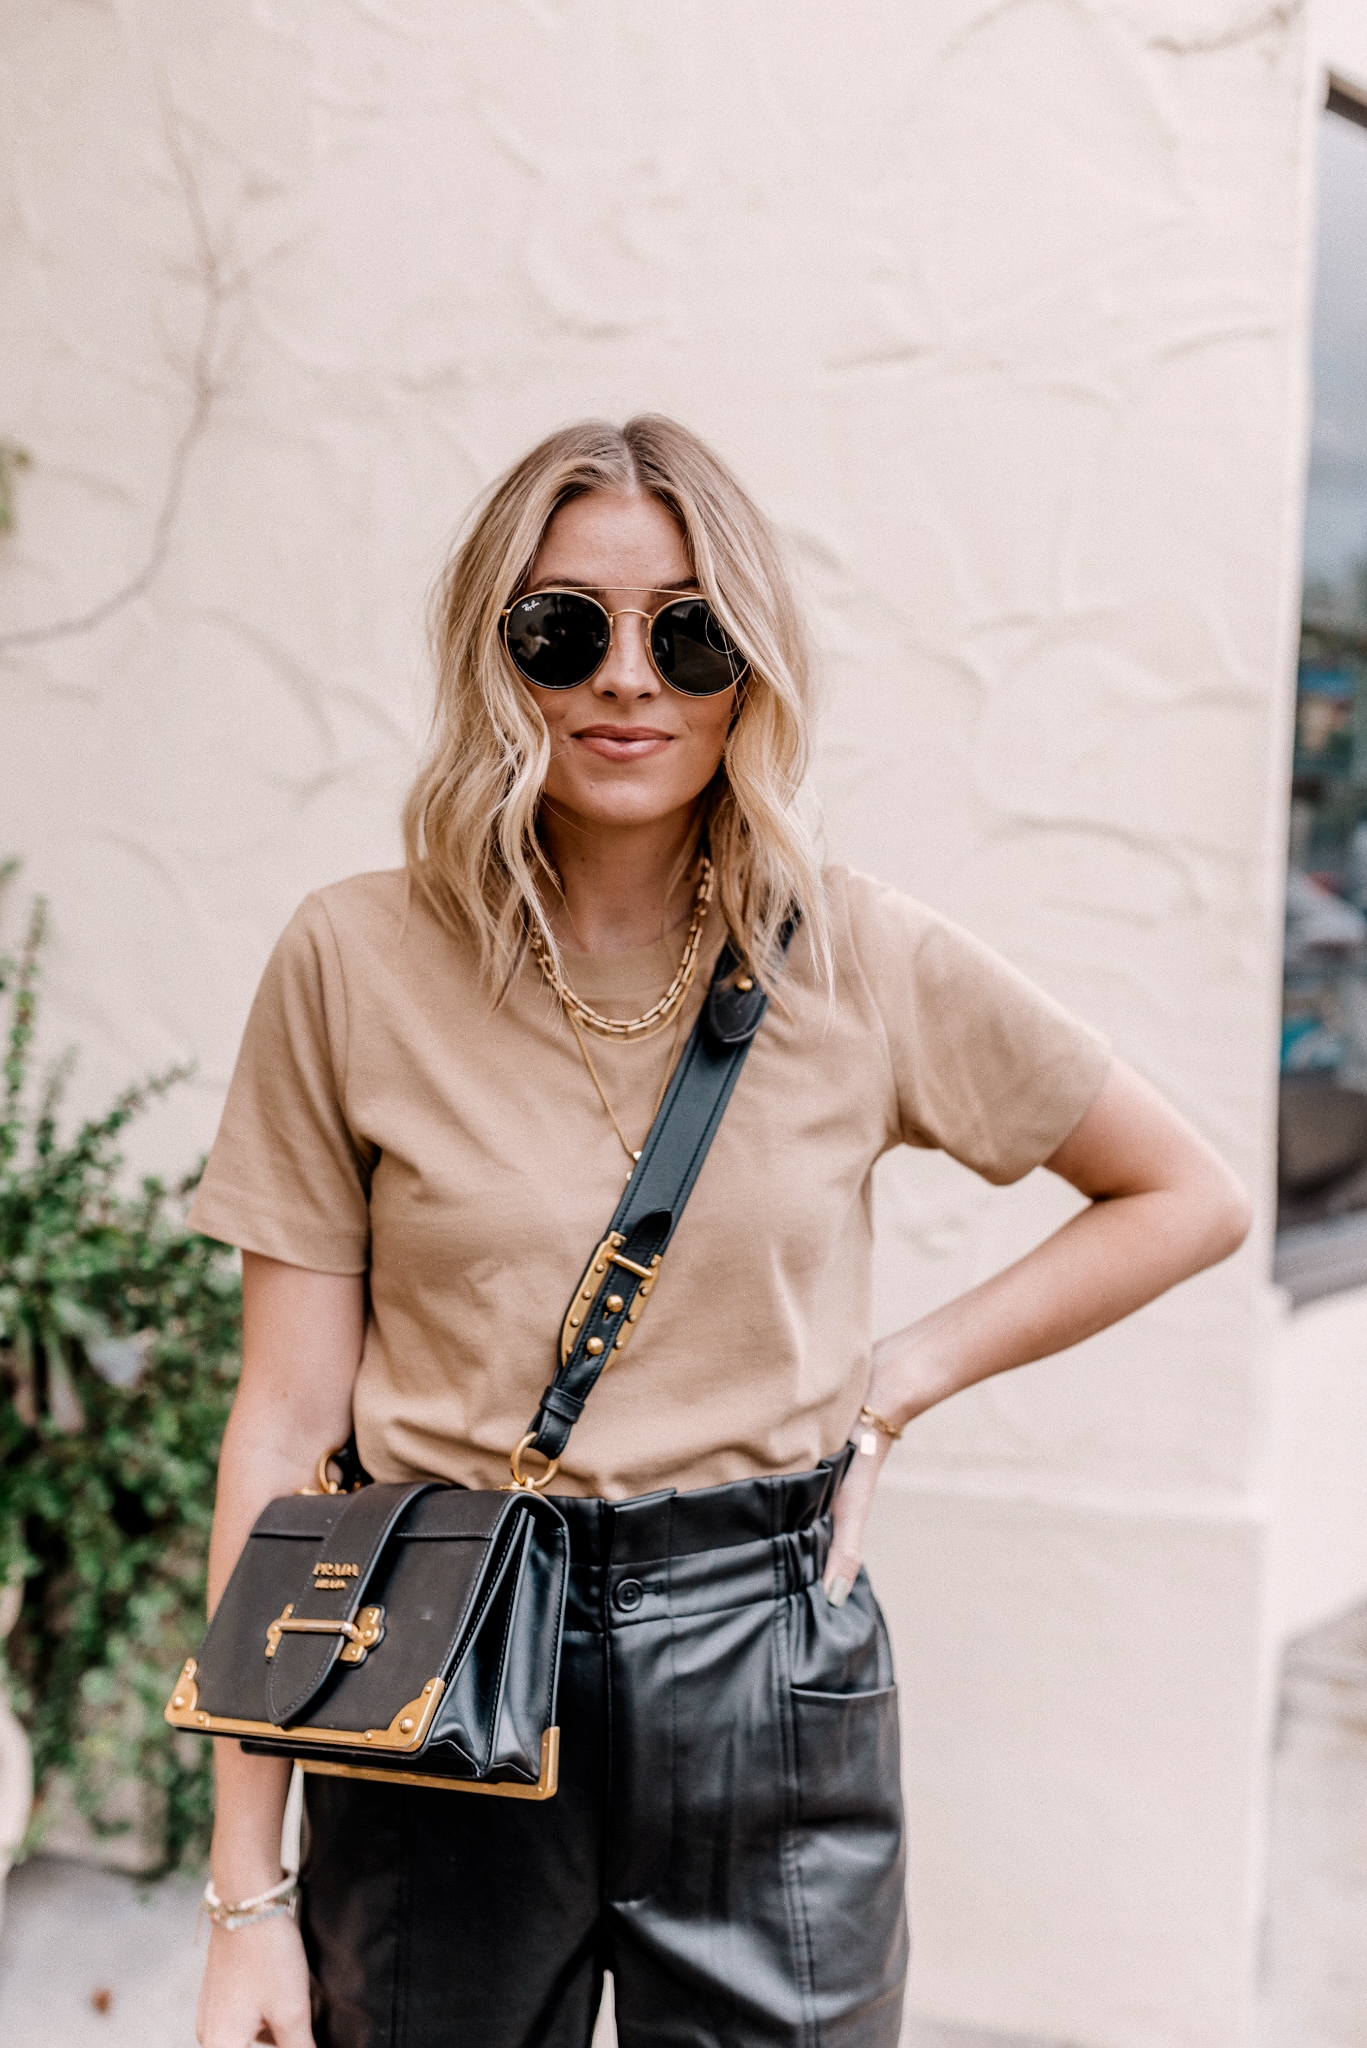 8 Faux Leather Pants | Faux Leather Pants by popular San Diego fashion blog, Navy Grace: image of a woman wearing a basic cotton tee, paper bag faux leather pants, ray-ban sunglasses, and Converse sneakers.